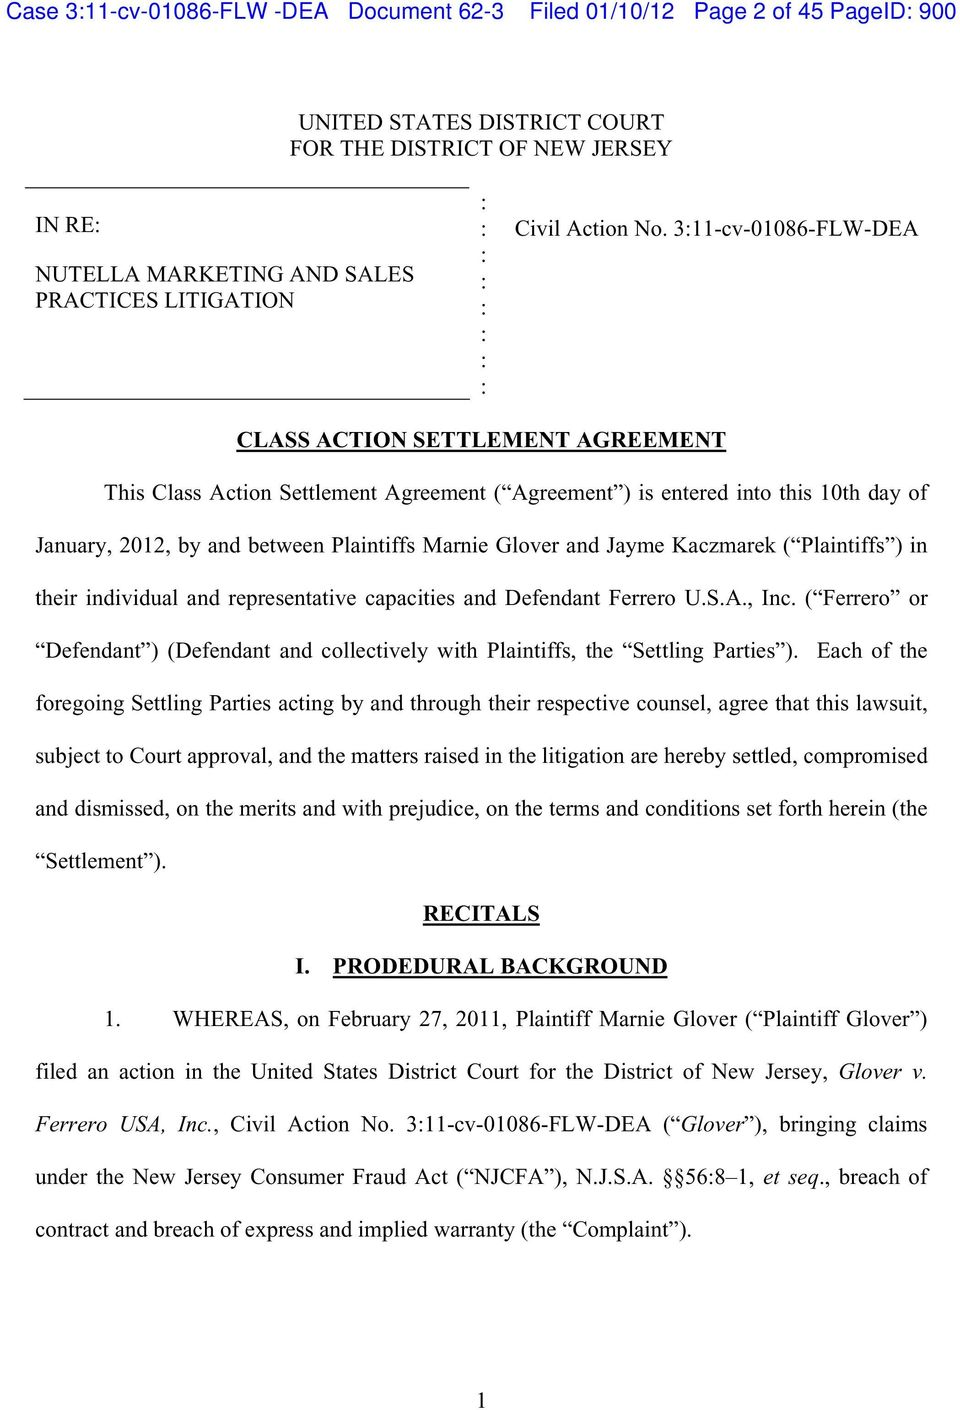 3:11-cv-01086-FLW-DEA CLASS ACTION SETTLEMENT AGREEMENT This Class Action Settlement Agreement ( Agreement ) is entered into this 10th day of January, 2012, by and between Plaintiffs Marnie Glover